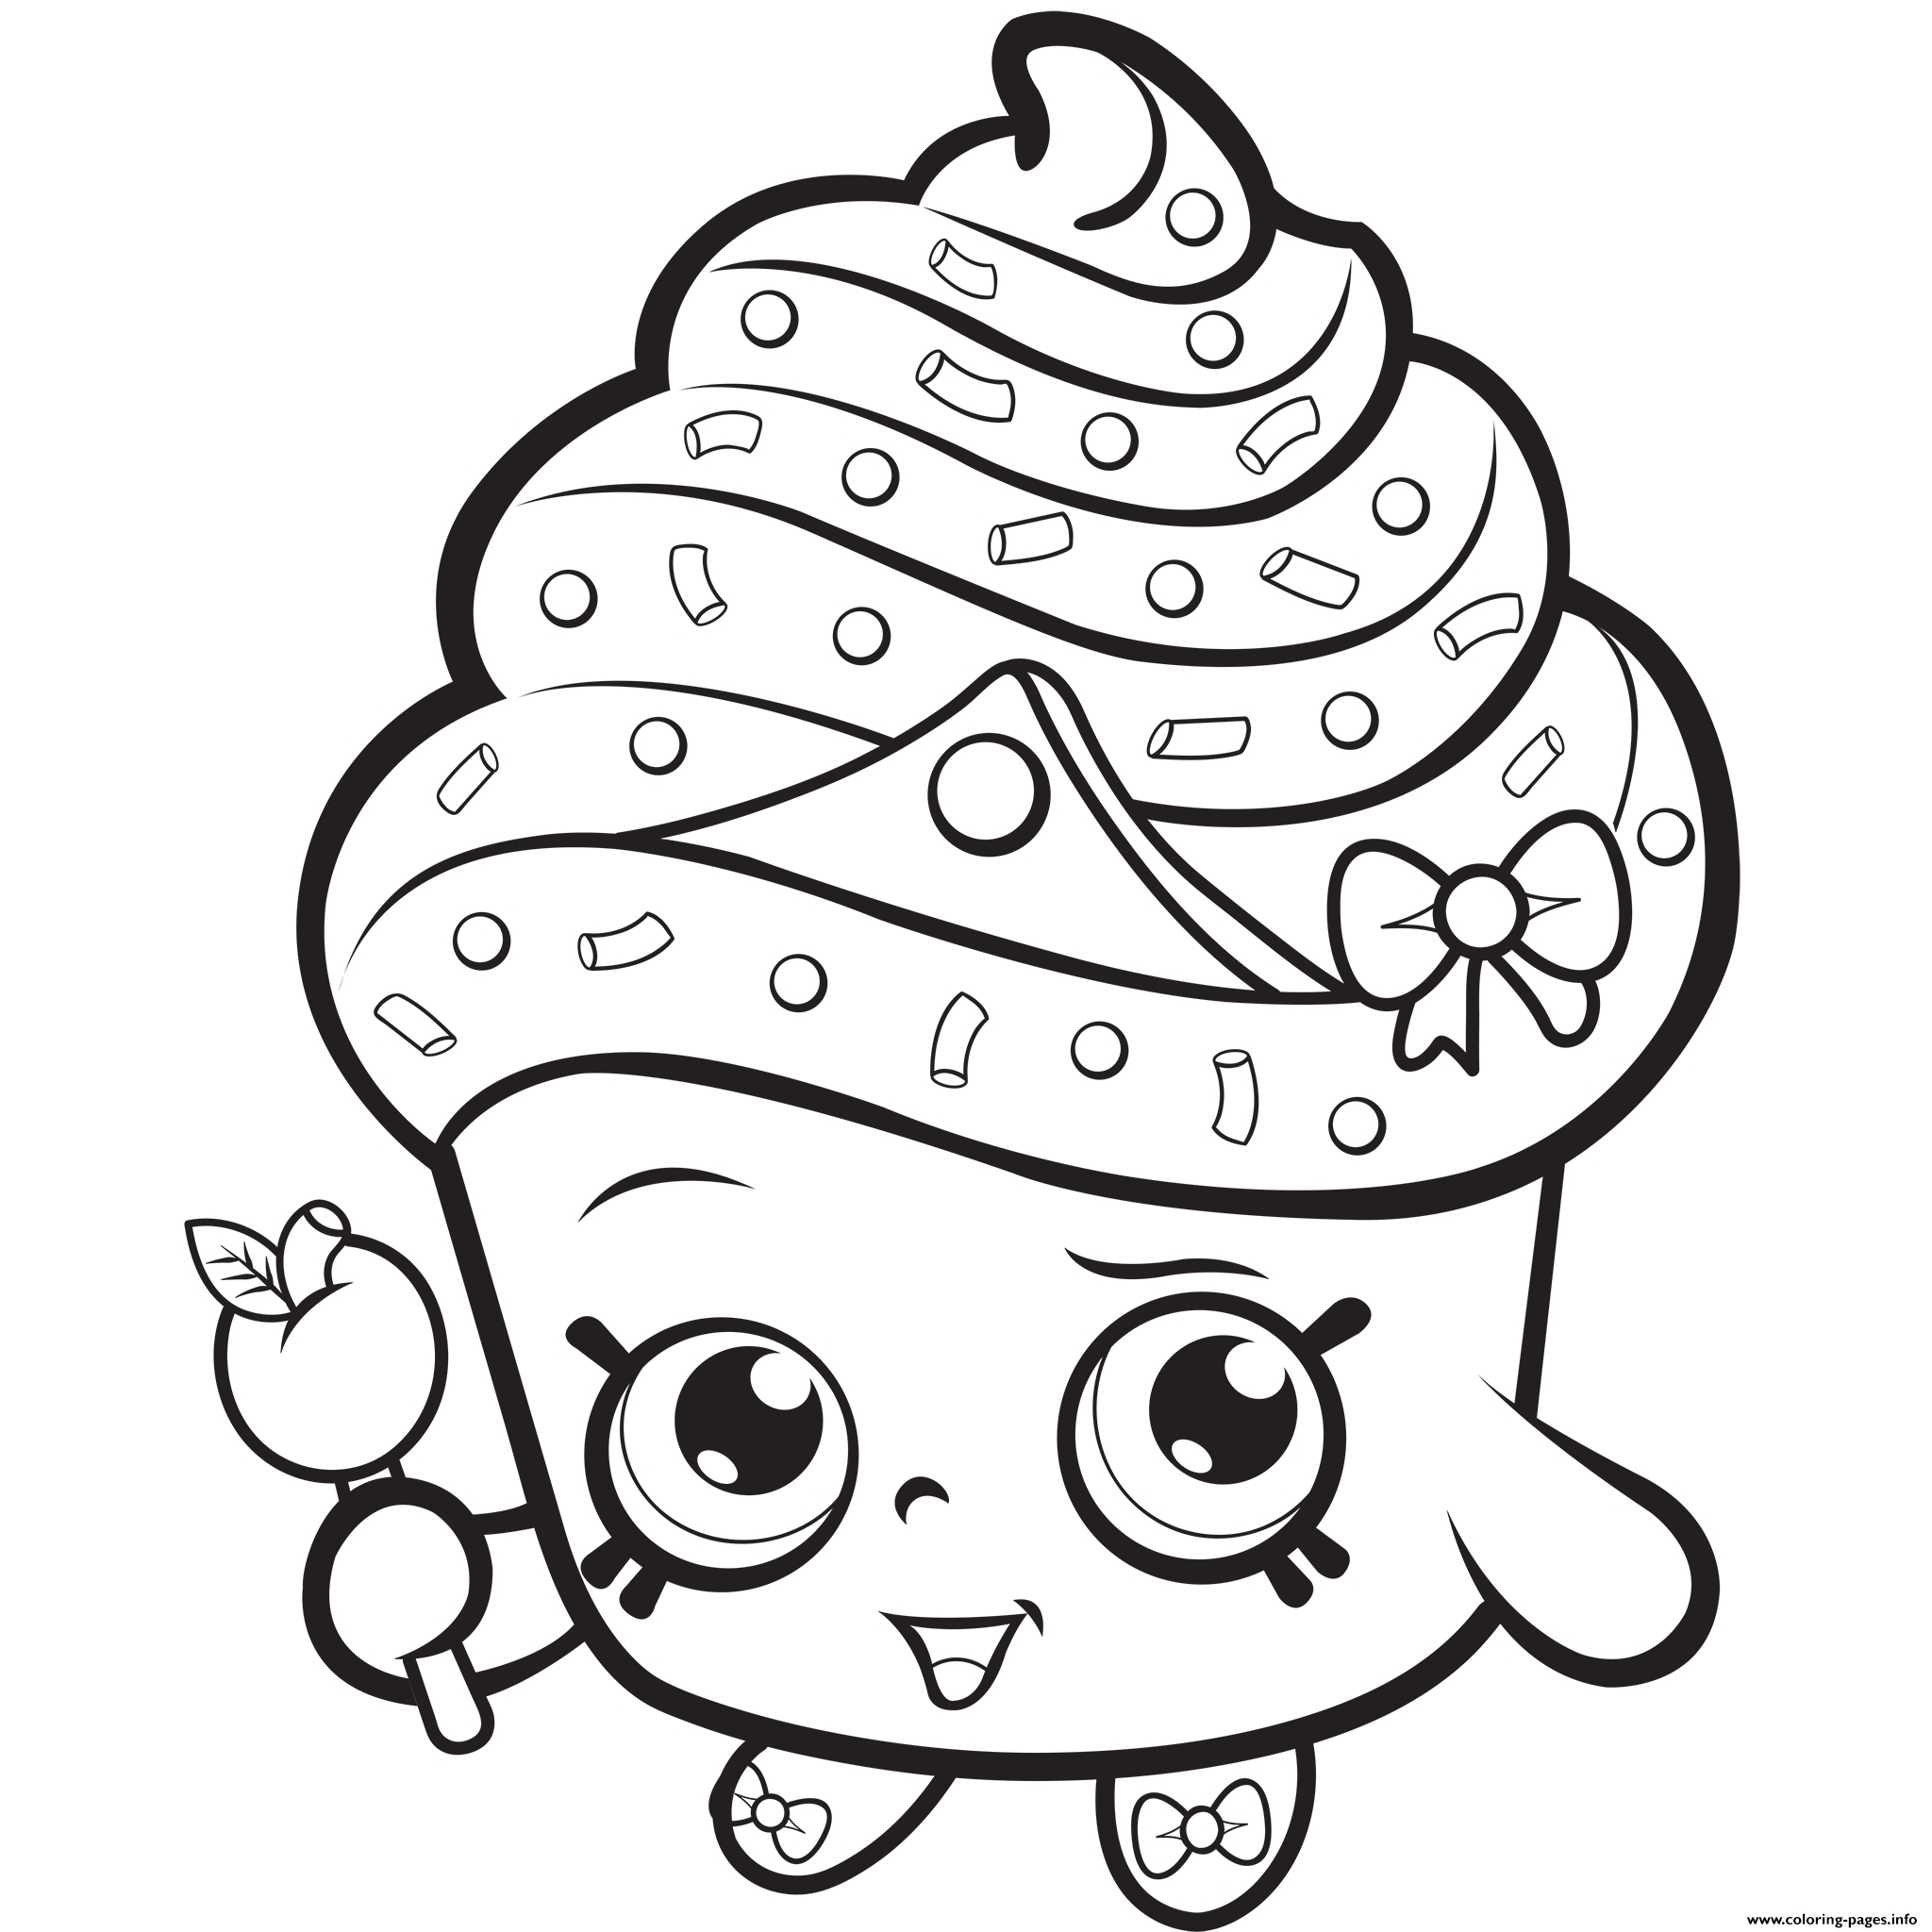 Lips Coloring Page Shopkins Lippy Lips Coloring Page